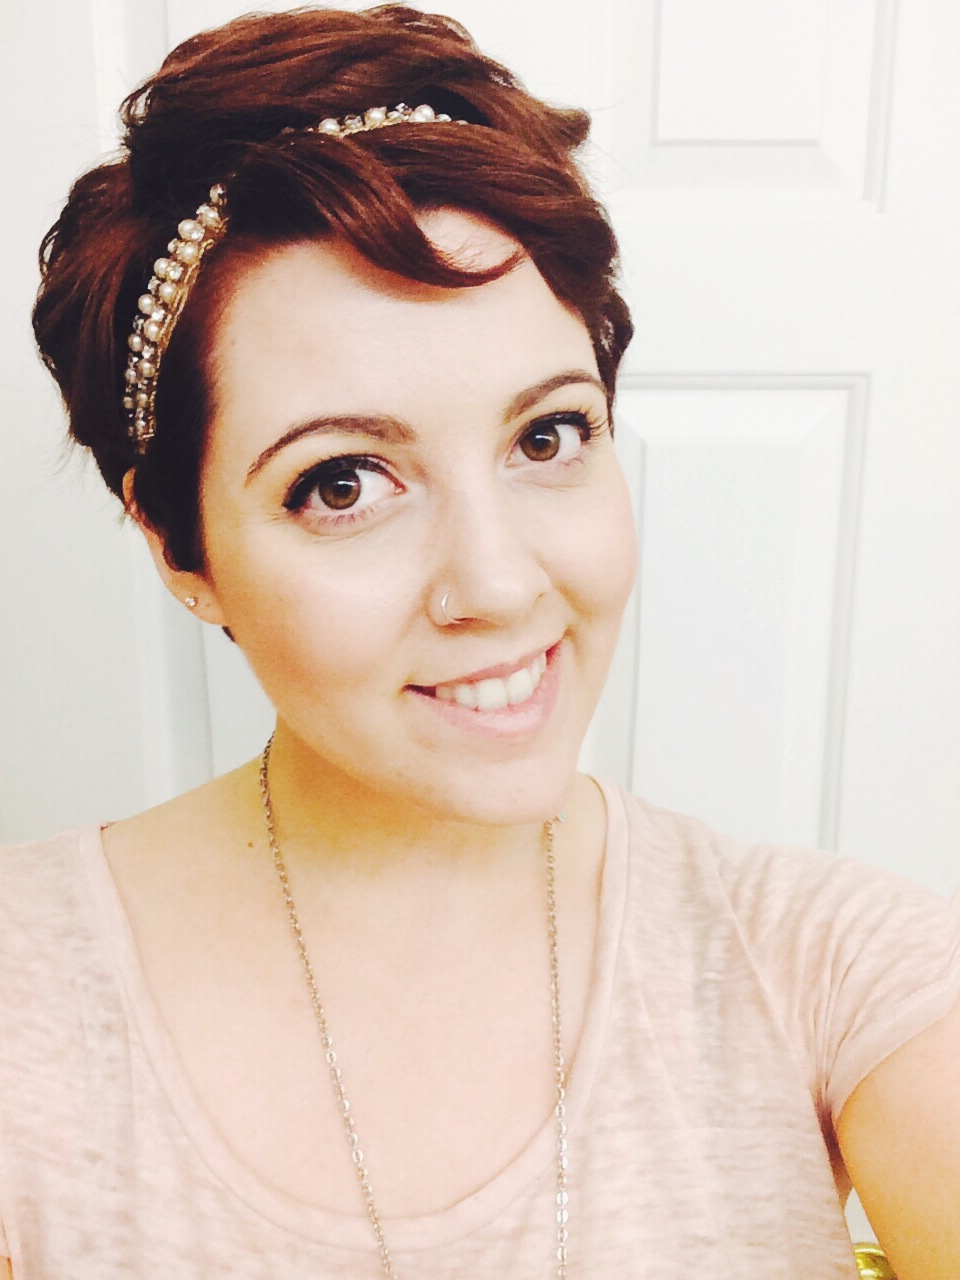 Pixie With Headband While I Grow It Out A Little   Short Hair Pertaining To Current Pixie Hairstyles With Headband (View 6 of 15)